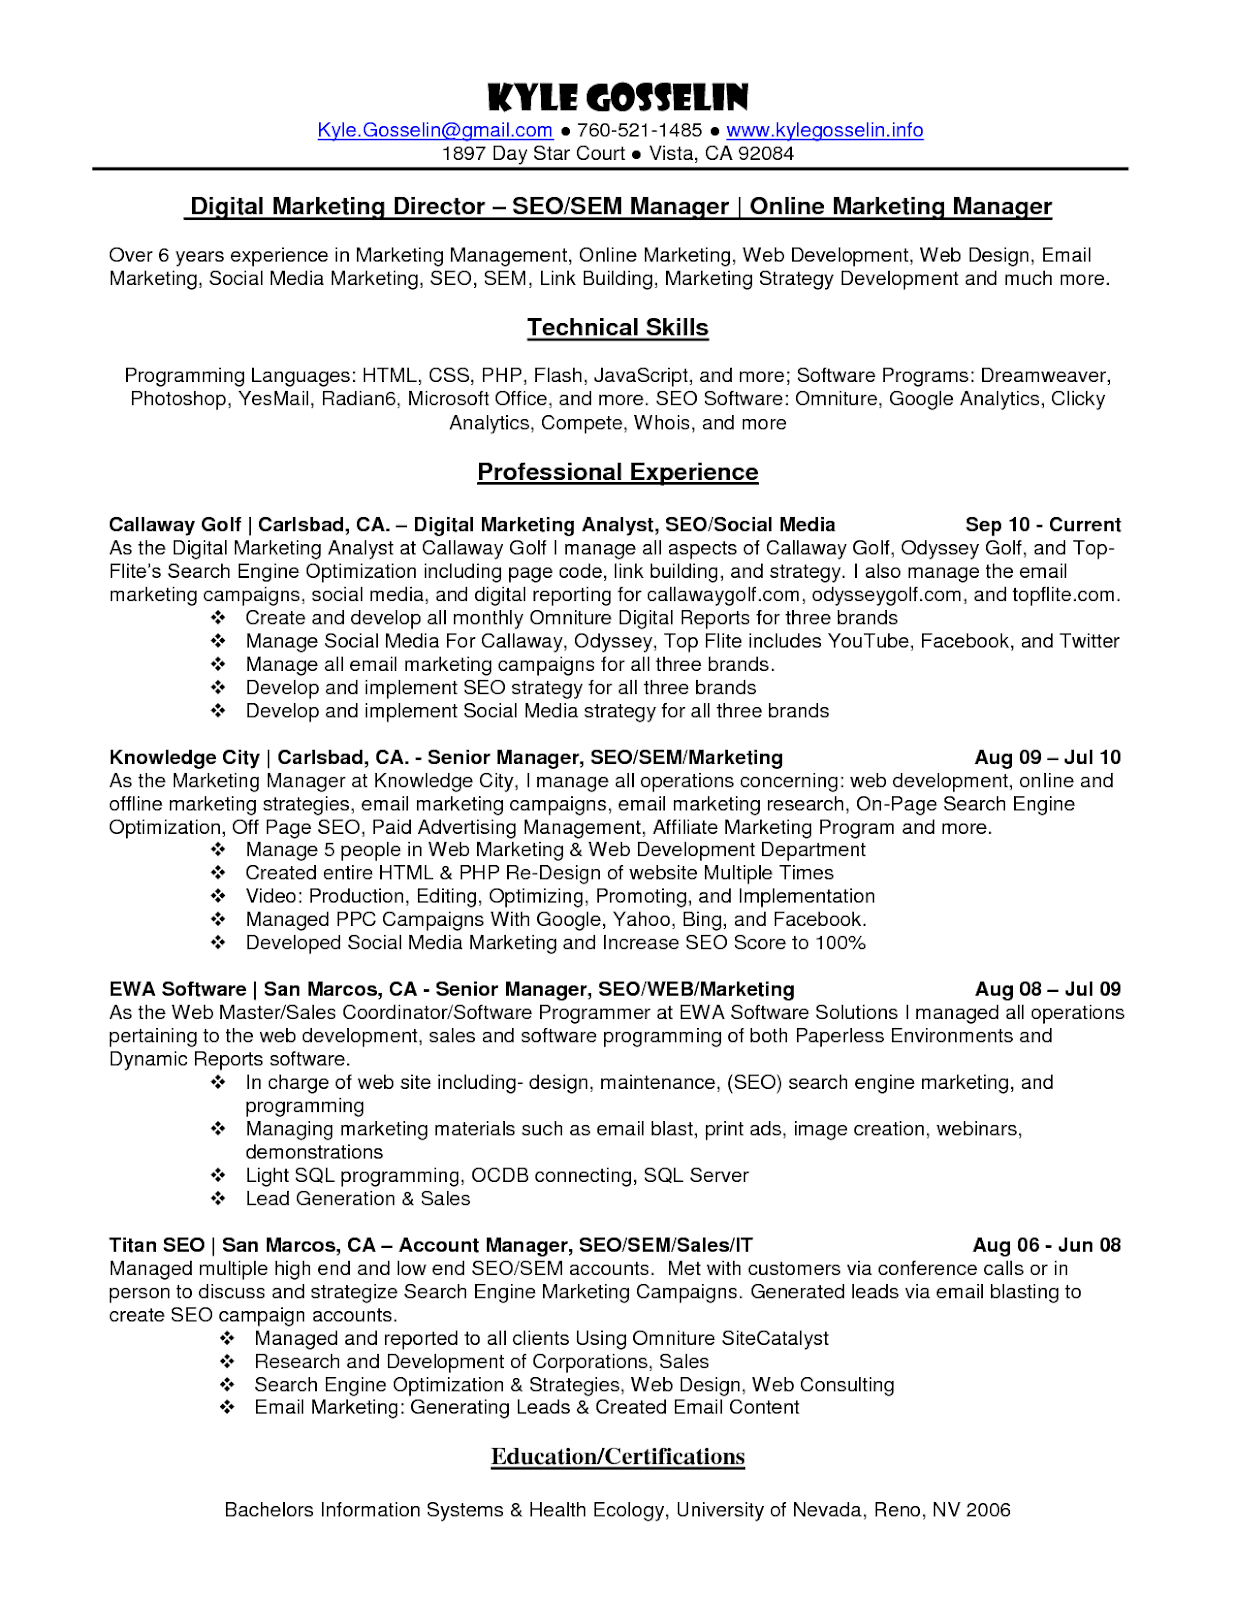 Digital Marketing Manager Resume Template Best Resume Examples